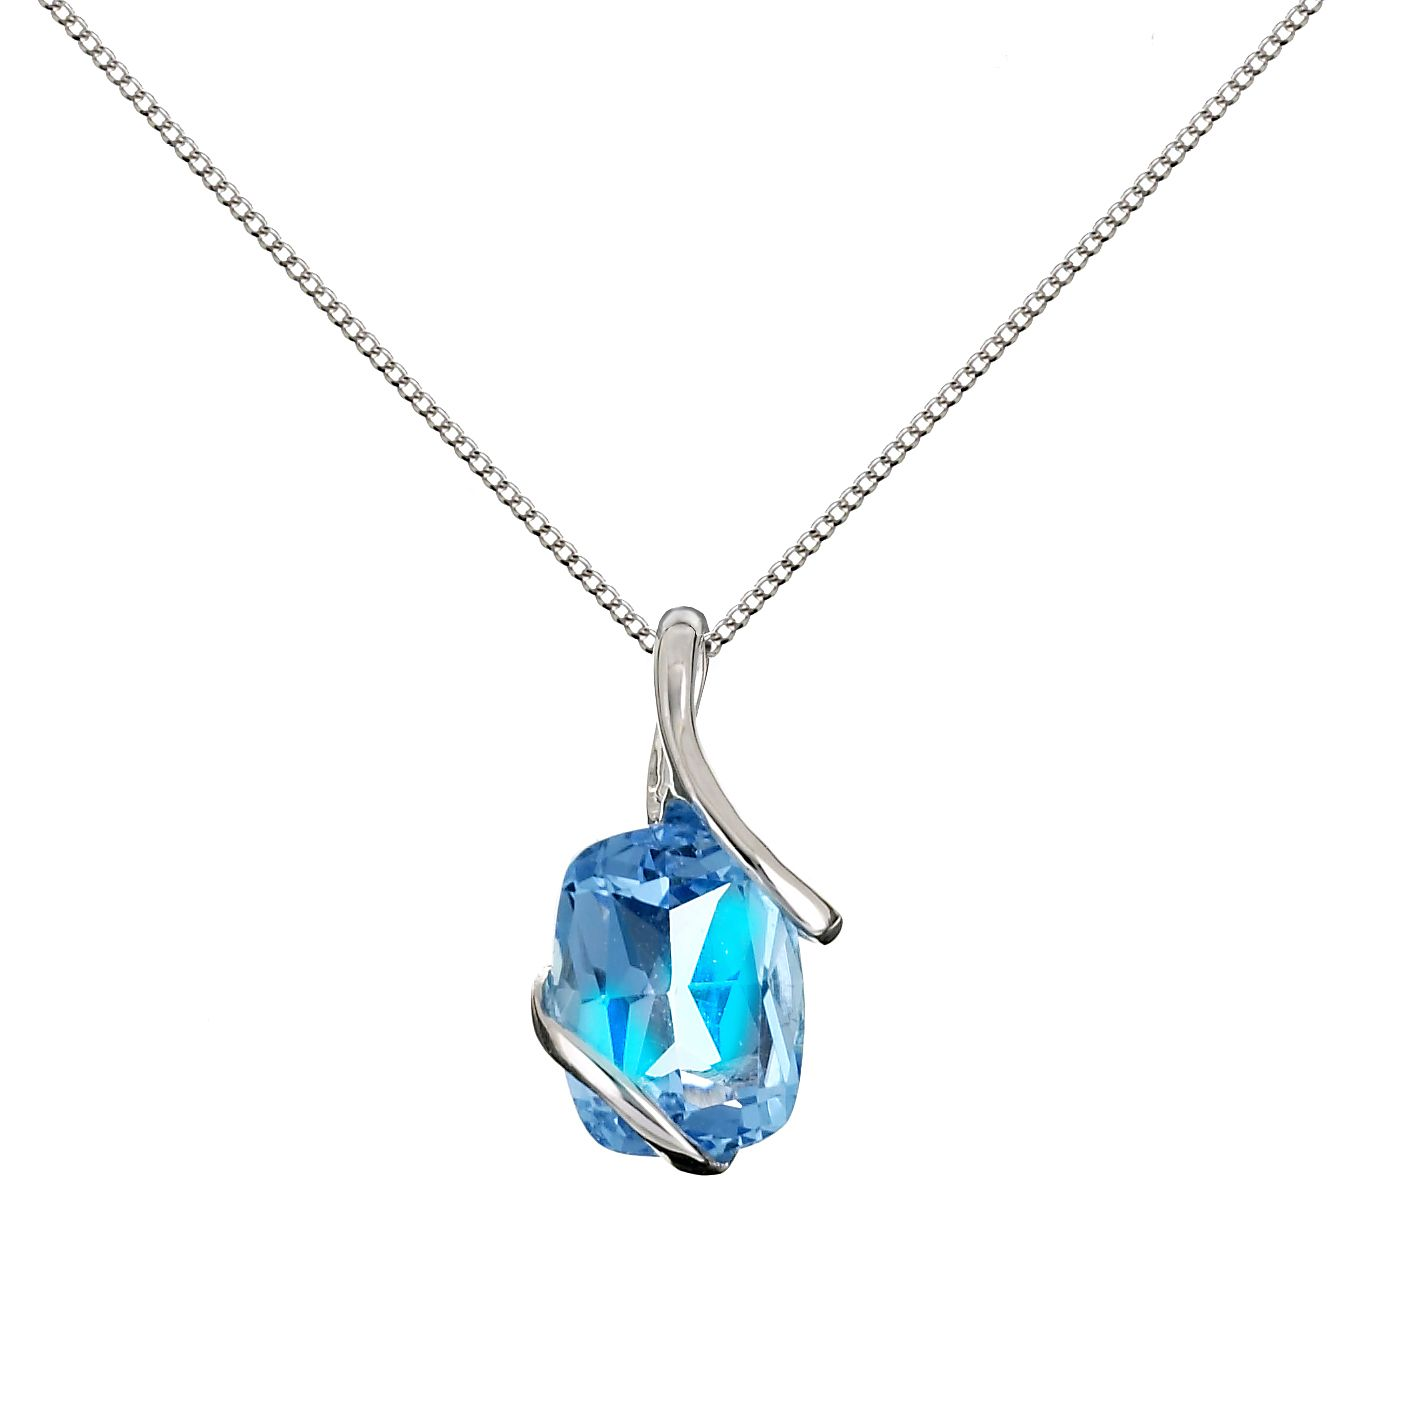 detailmain rope in nile sterling lrg main topaz blue phab necklace white pendant silver